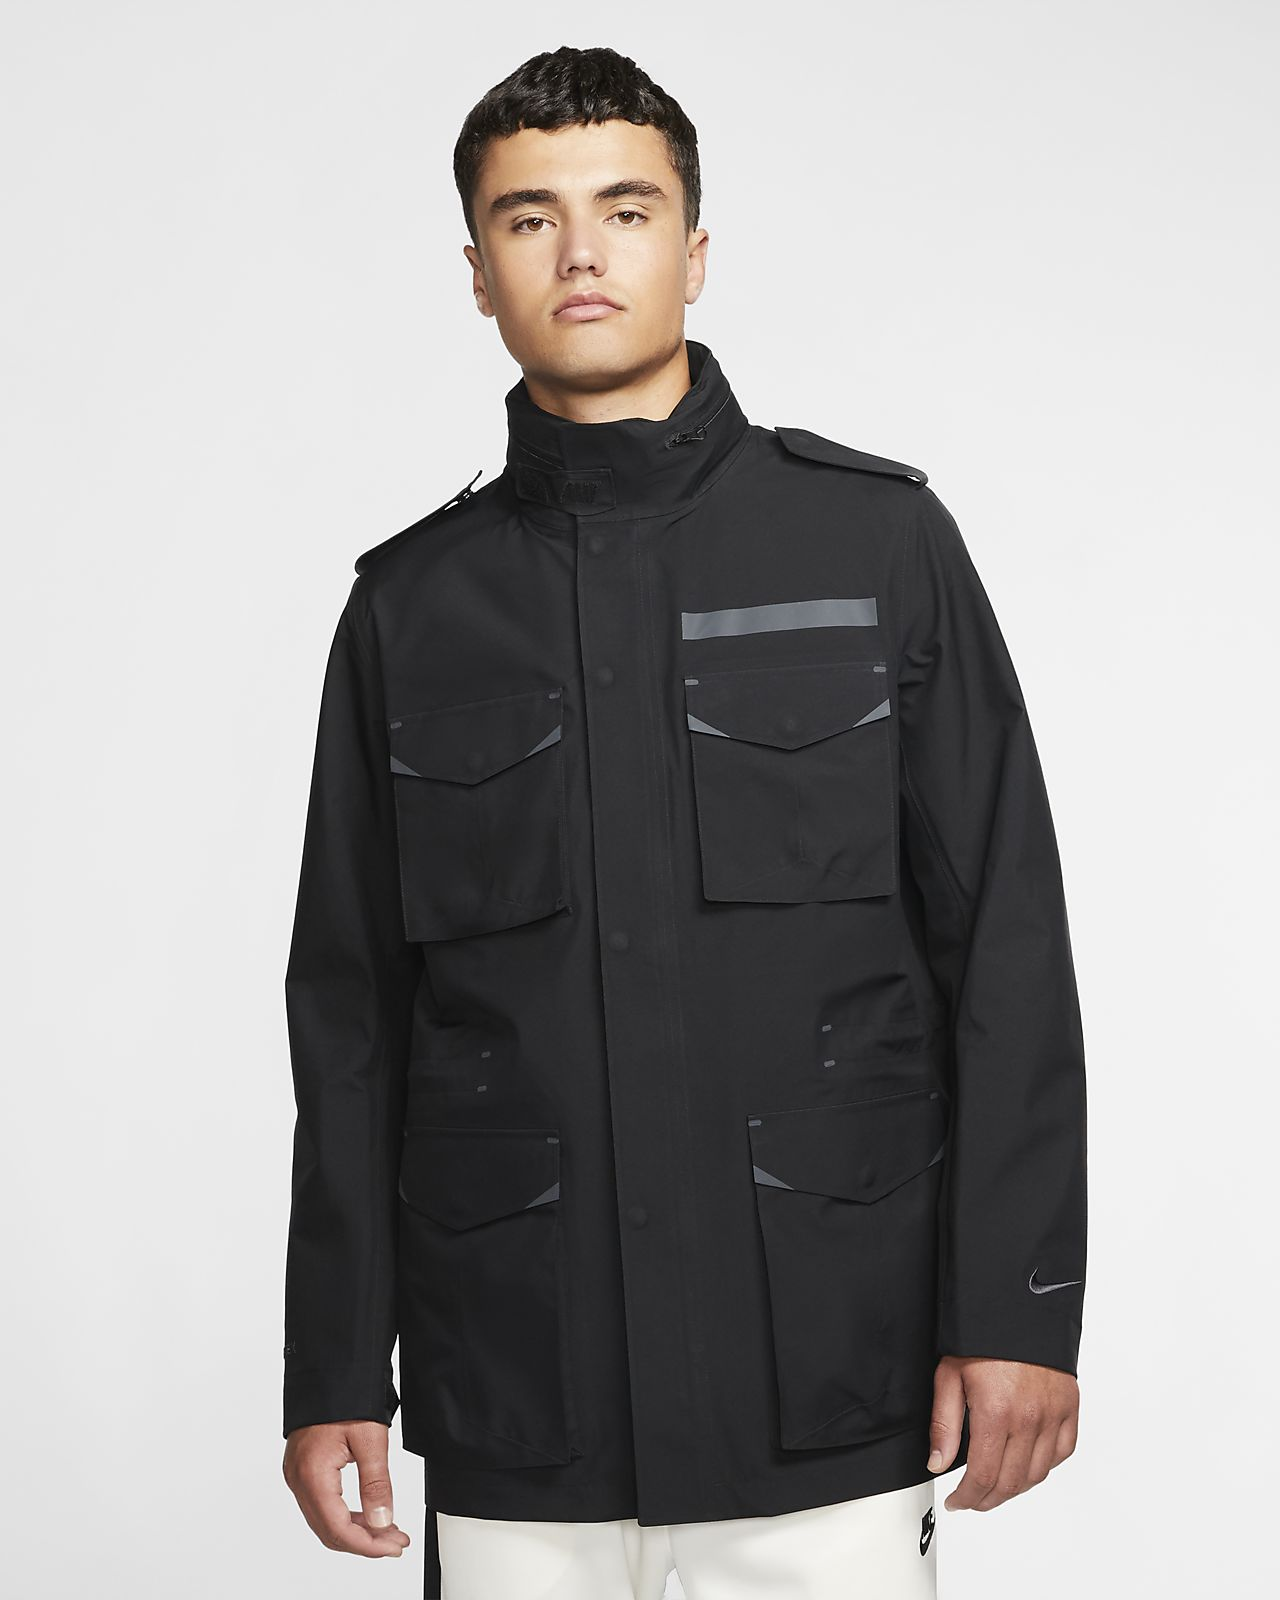 Nike GORE-TEX M65 Men's Jacket